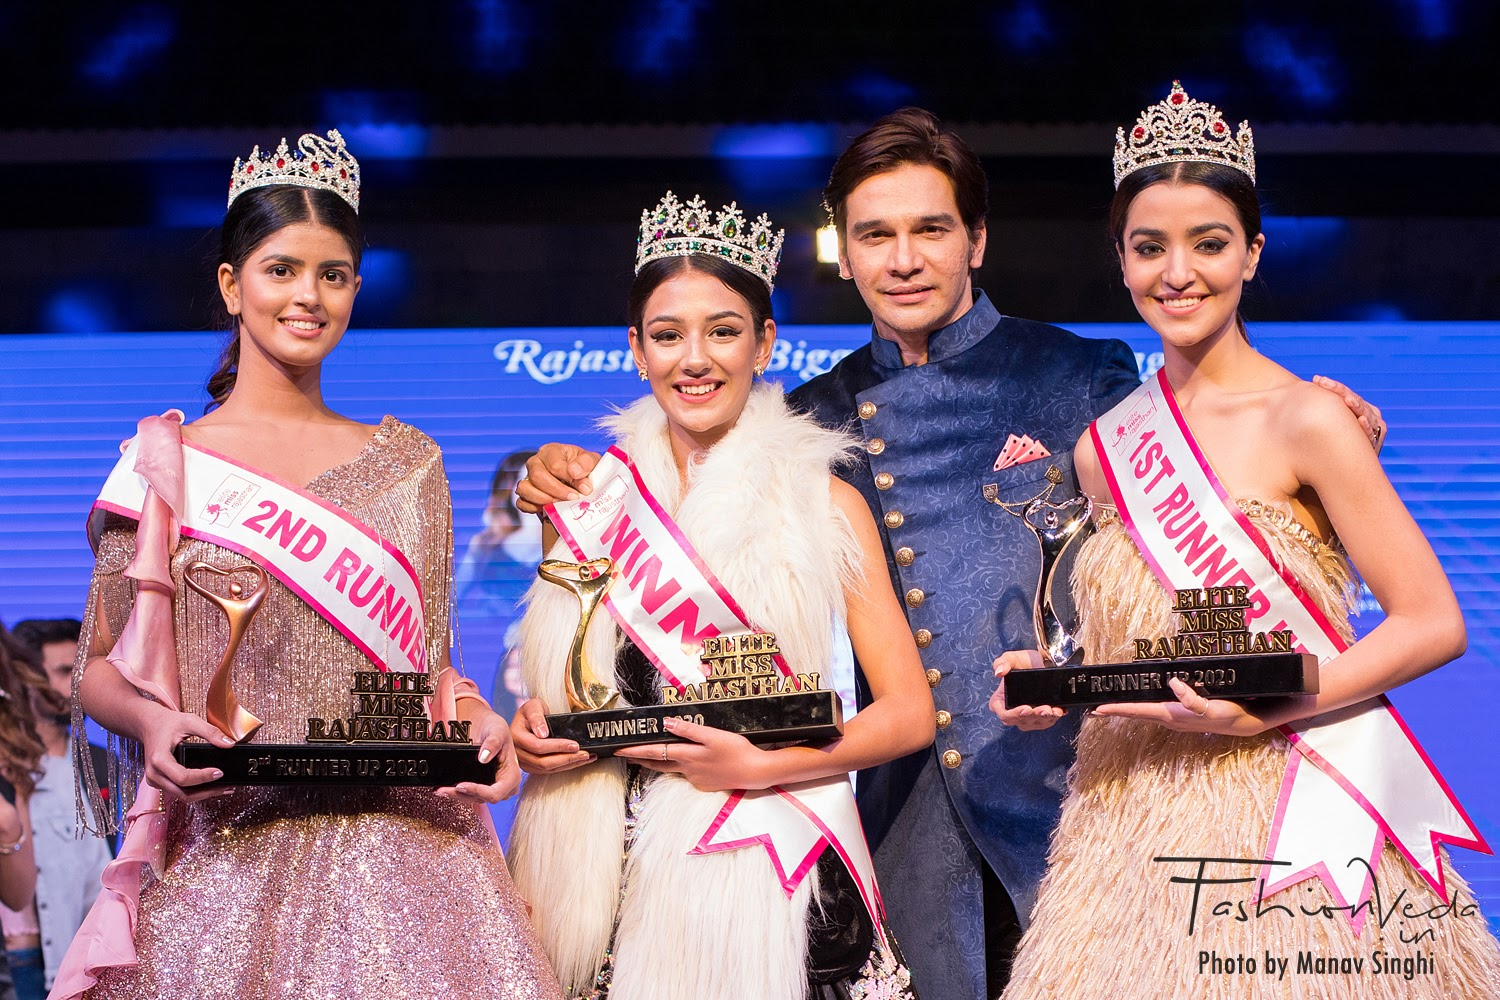 Mentors And Judges With Top Three Winners of Elite Miss Rajasthan 2020